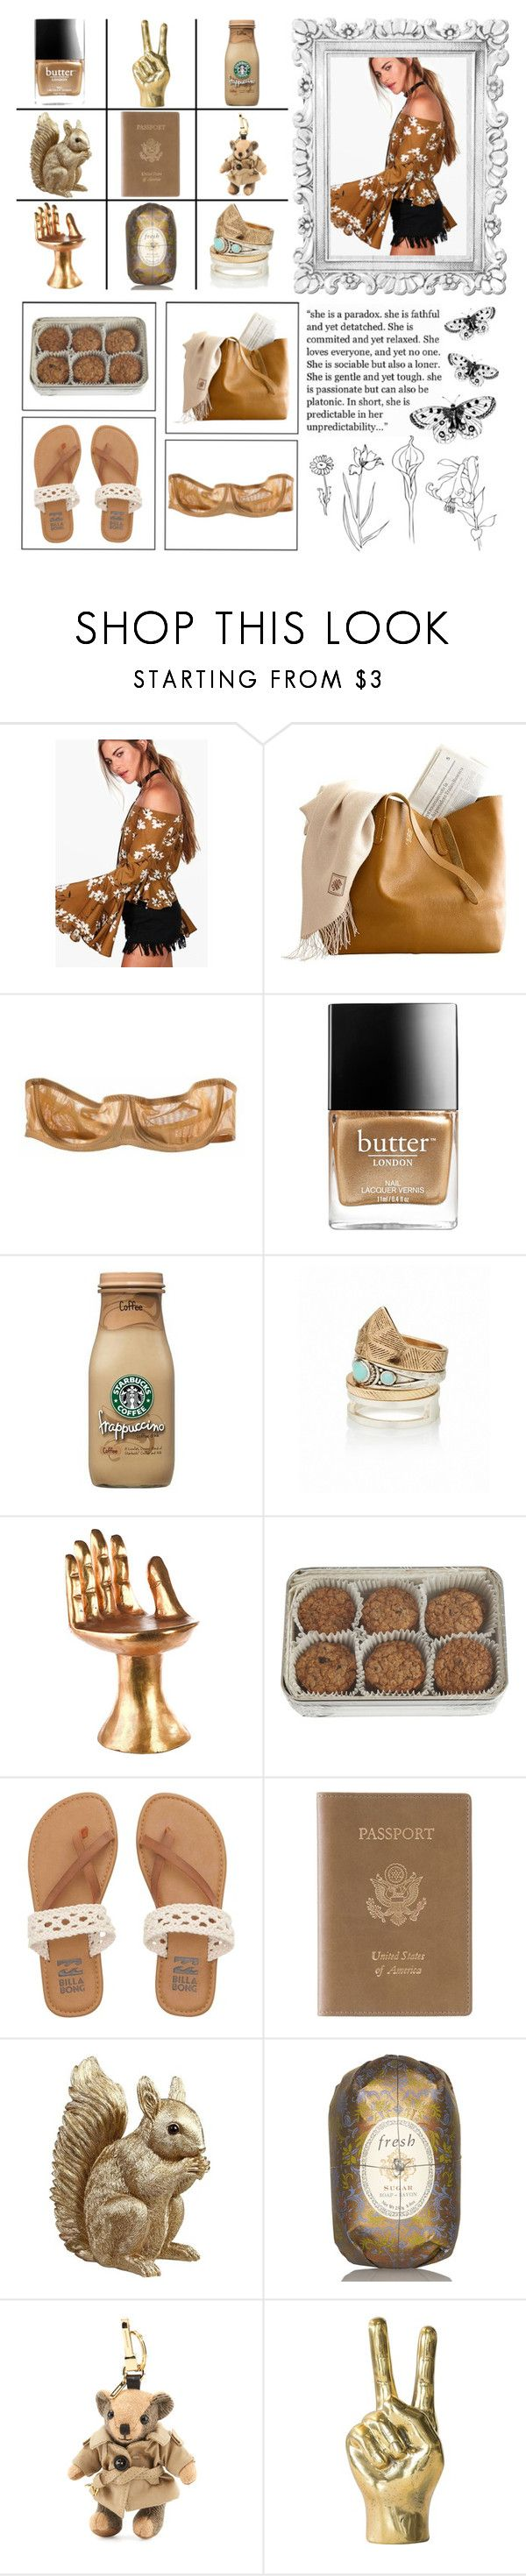 """""""Boho Babe"""" by alongcametwiggy ❤ liked on Polyvore featuring Forum, Boohoo, Bodas, Butter London, Pols Potten, FREDS at Barneys New York, Billabong, Royce Leather, Fresh and Burberry"""